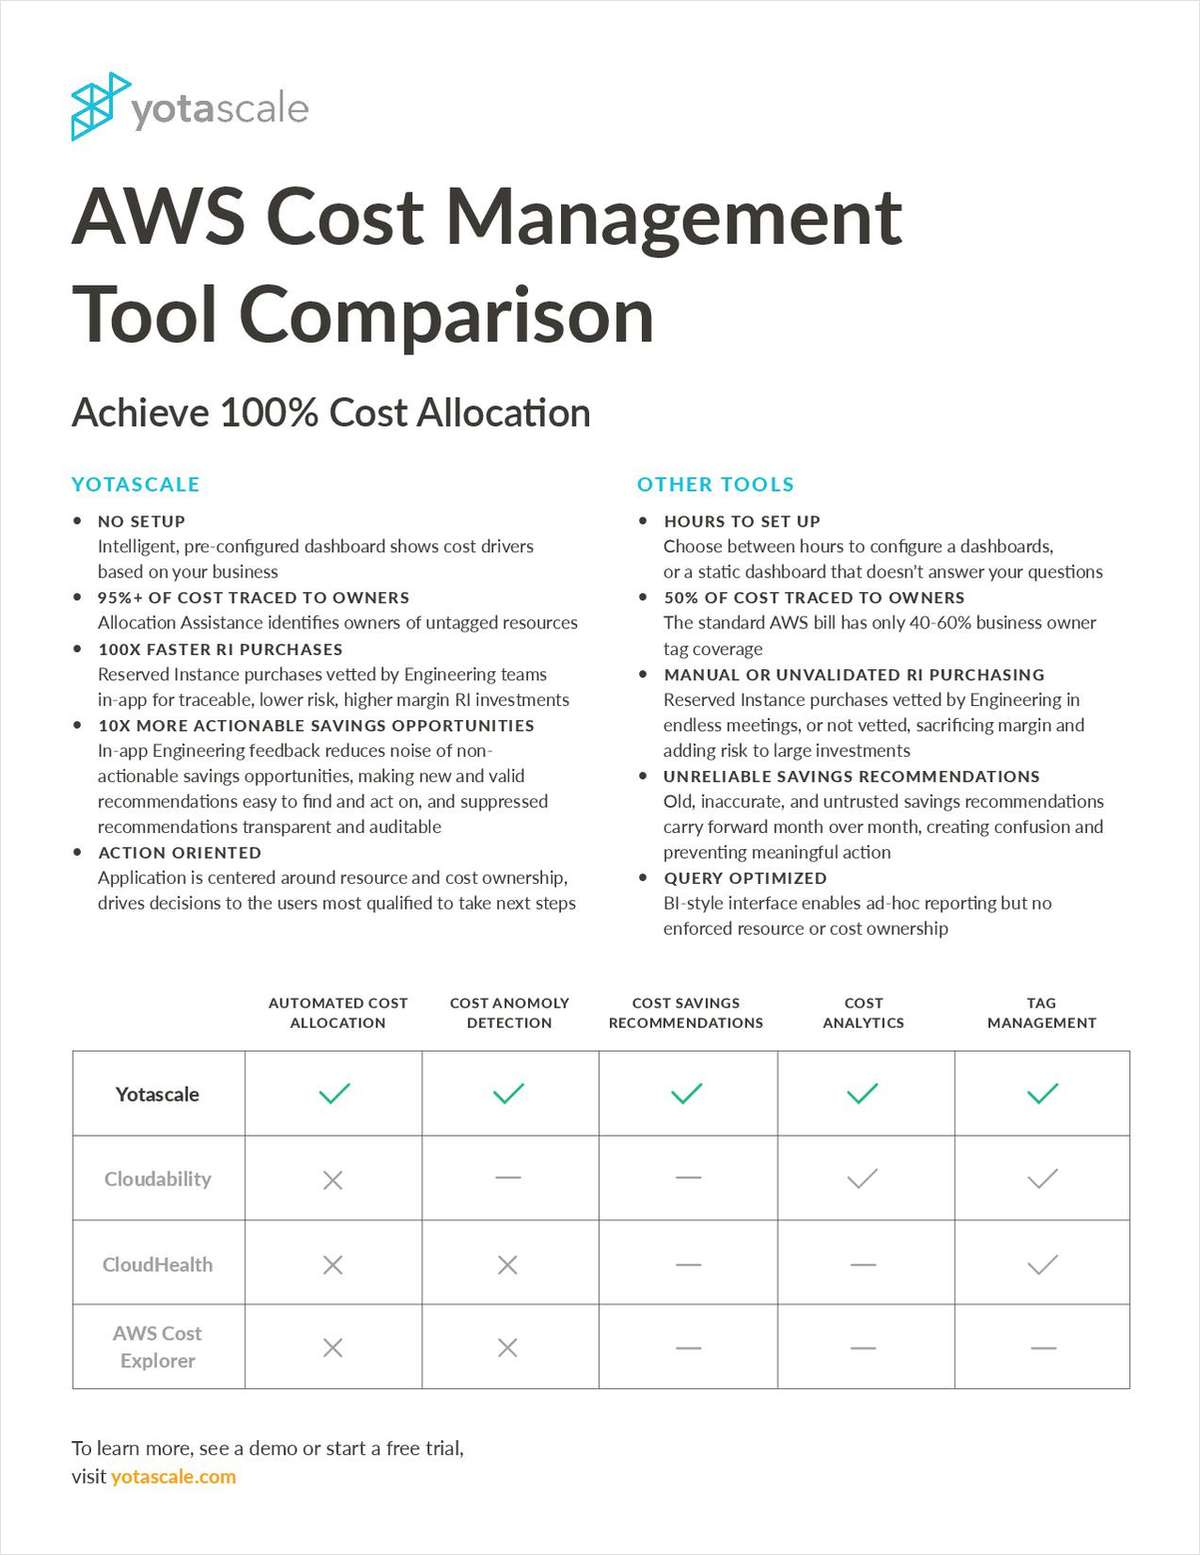 AWS Cost Management Tool Comparison